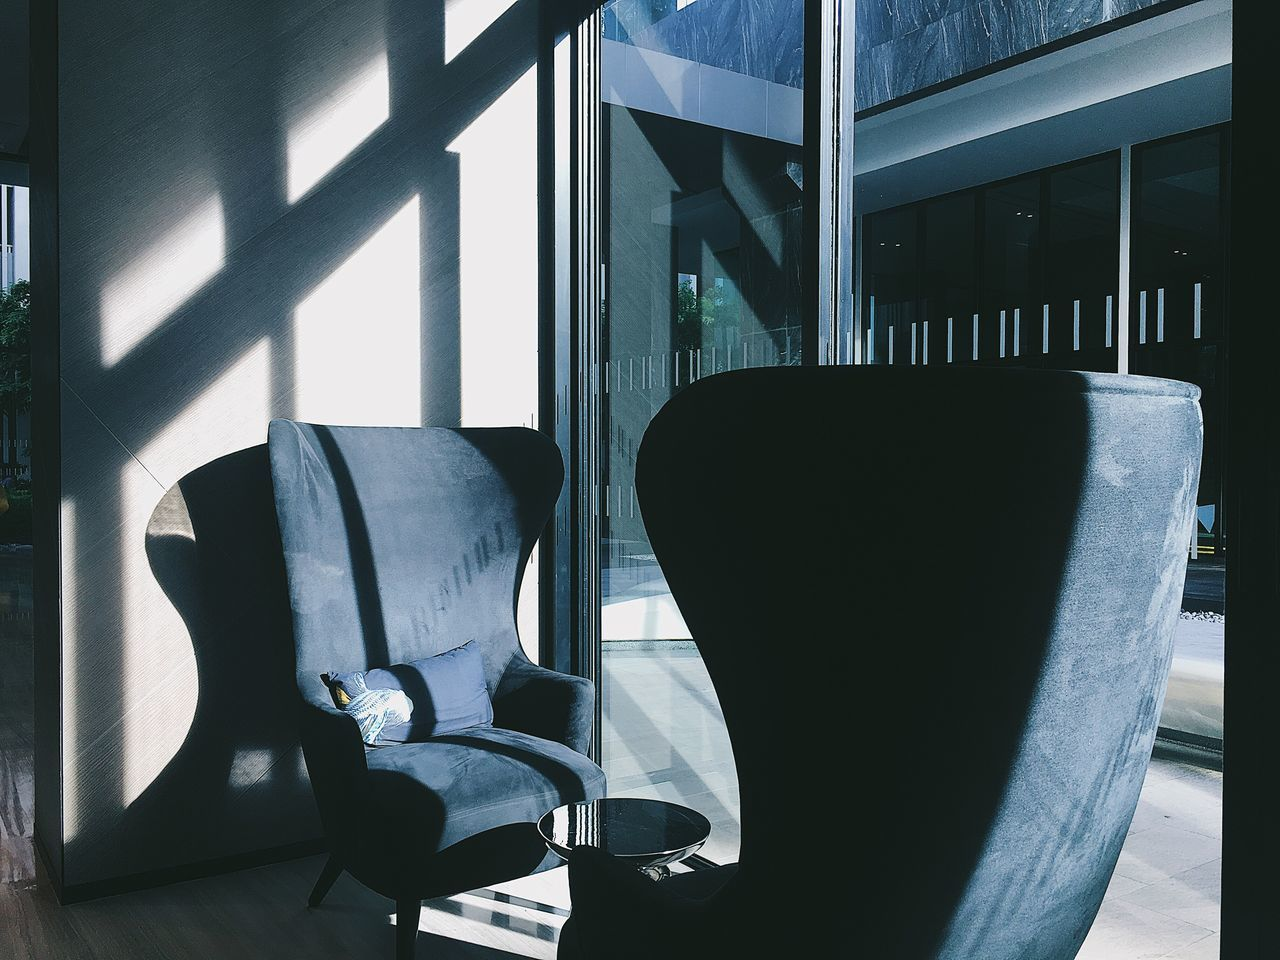 chair, indoors, window, no people, home interior, armchair, table, day, seat, close-up